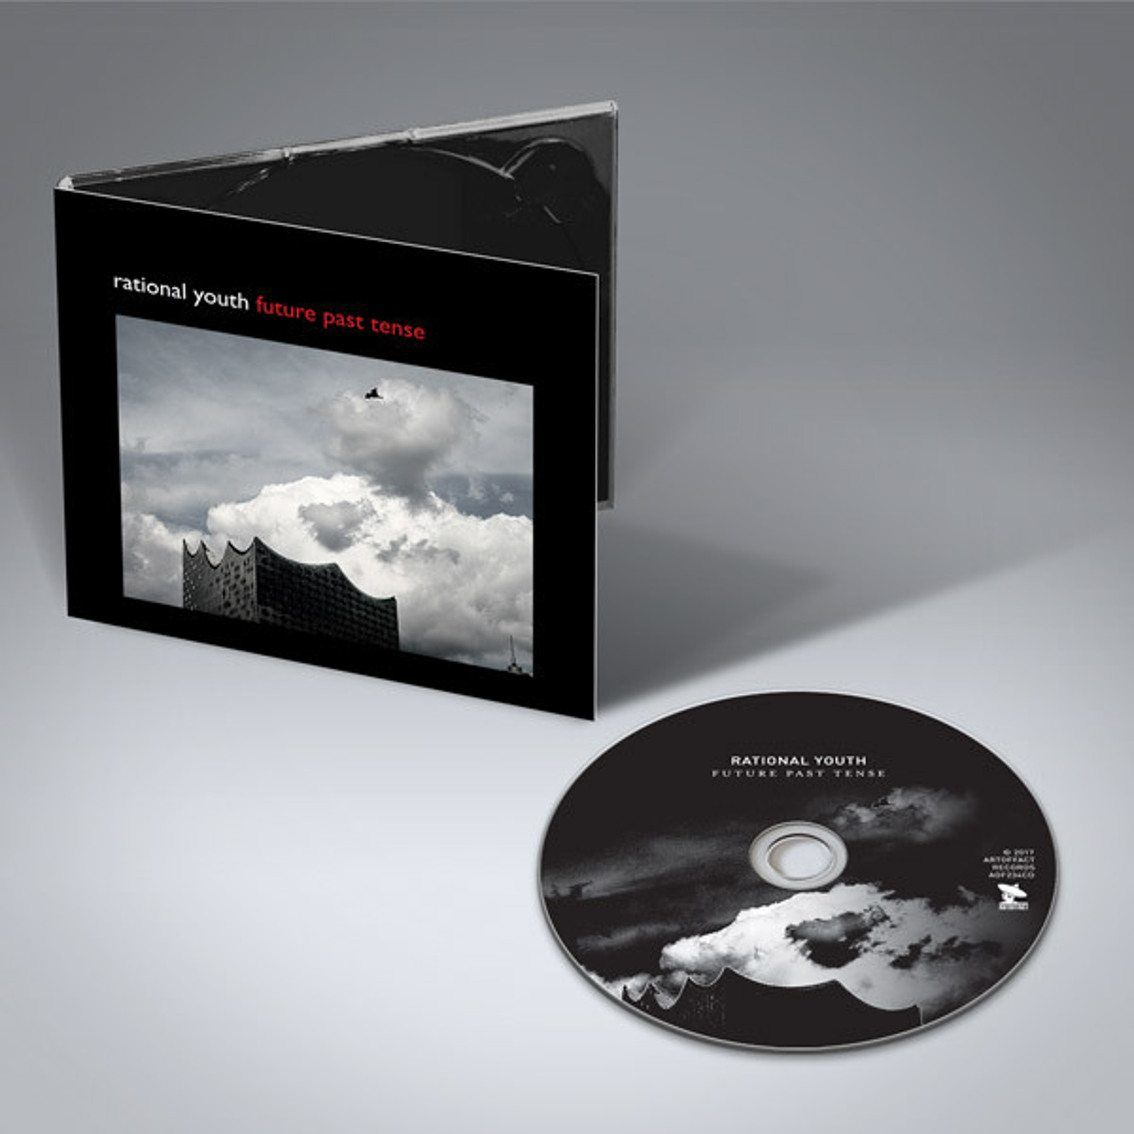 Rational Youth sees'Future Past Tense' reissued on CD including 6 bonus tracks - available now for ordering